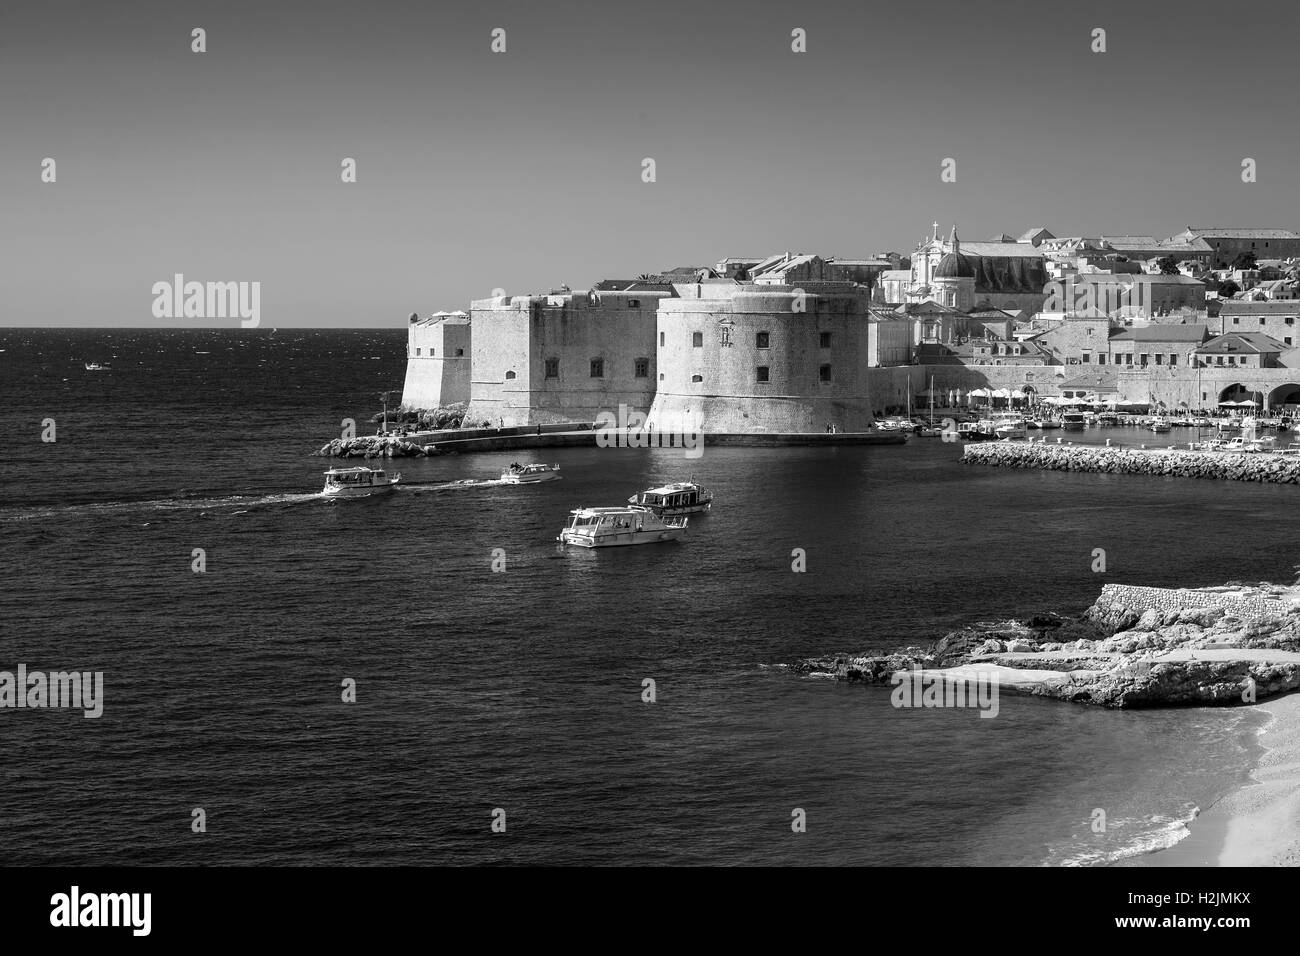 Stari grad (old town) and the old harbour, from Ulica Frana Supila above Banje Beach, Dubrovnik, Croatia, Black - Stock Image